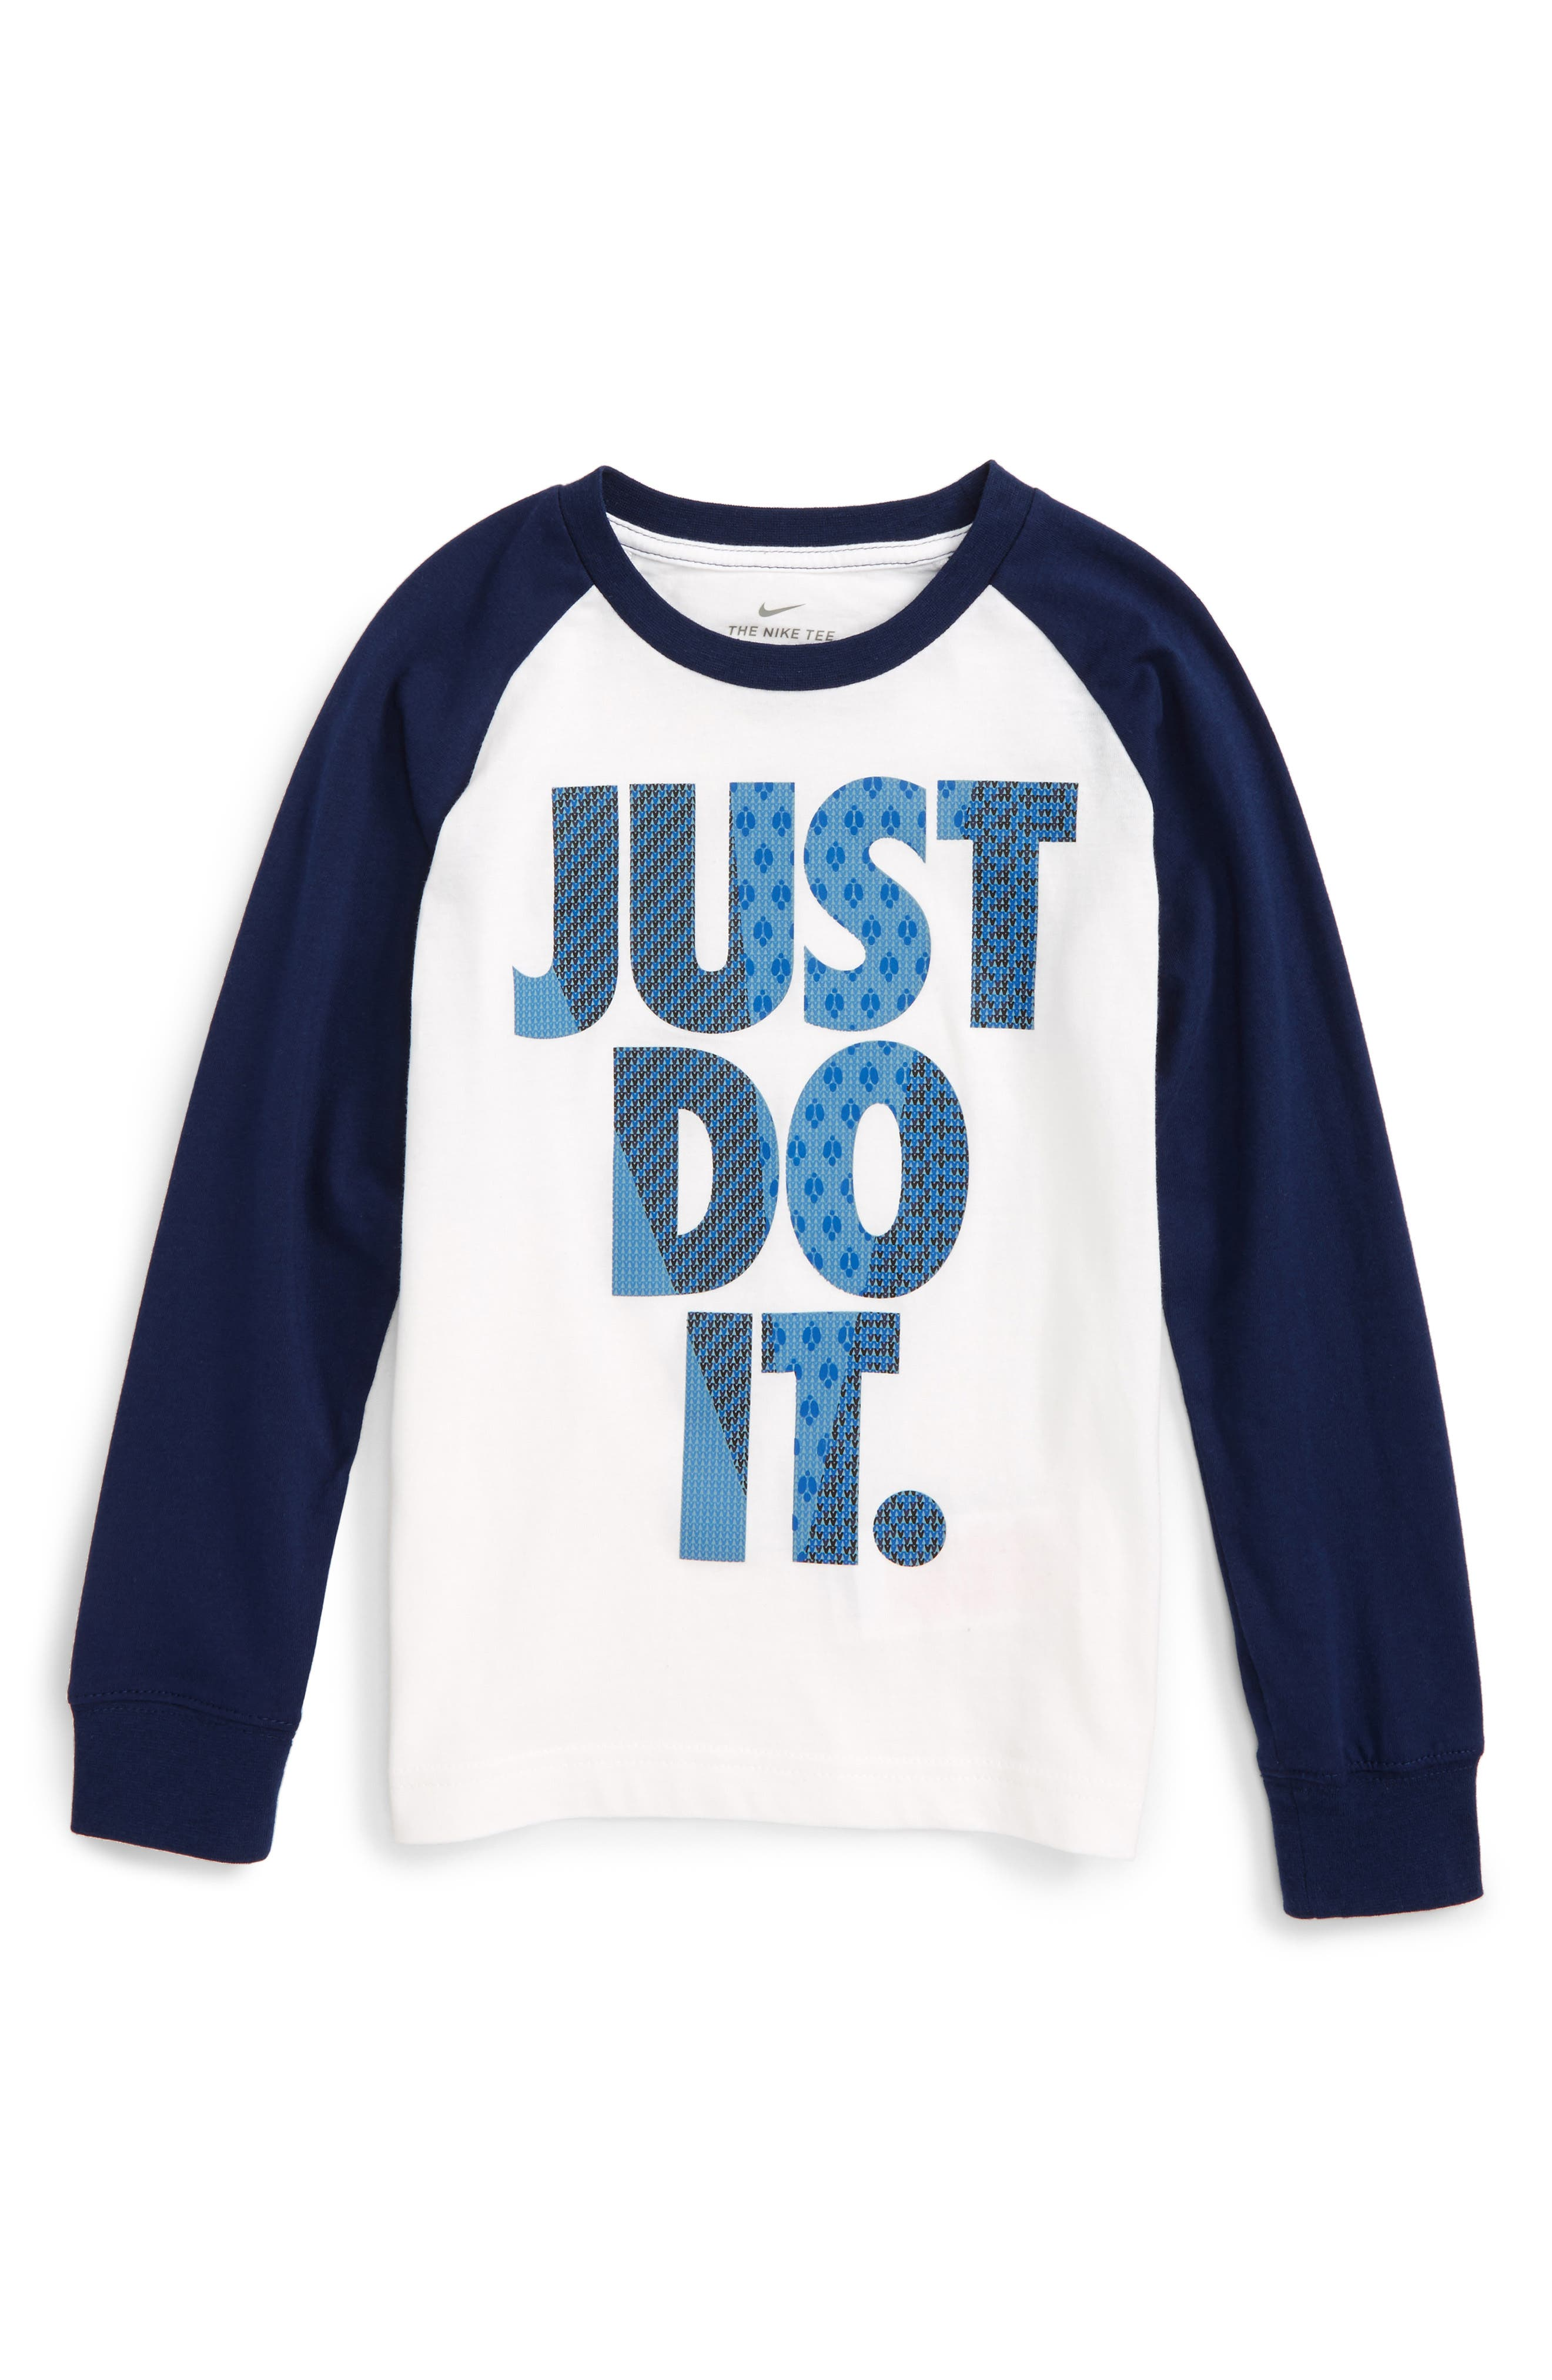 Nike Flyknit Just Do It Graphic T-Shirt (Toddler & Little Boys)